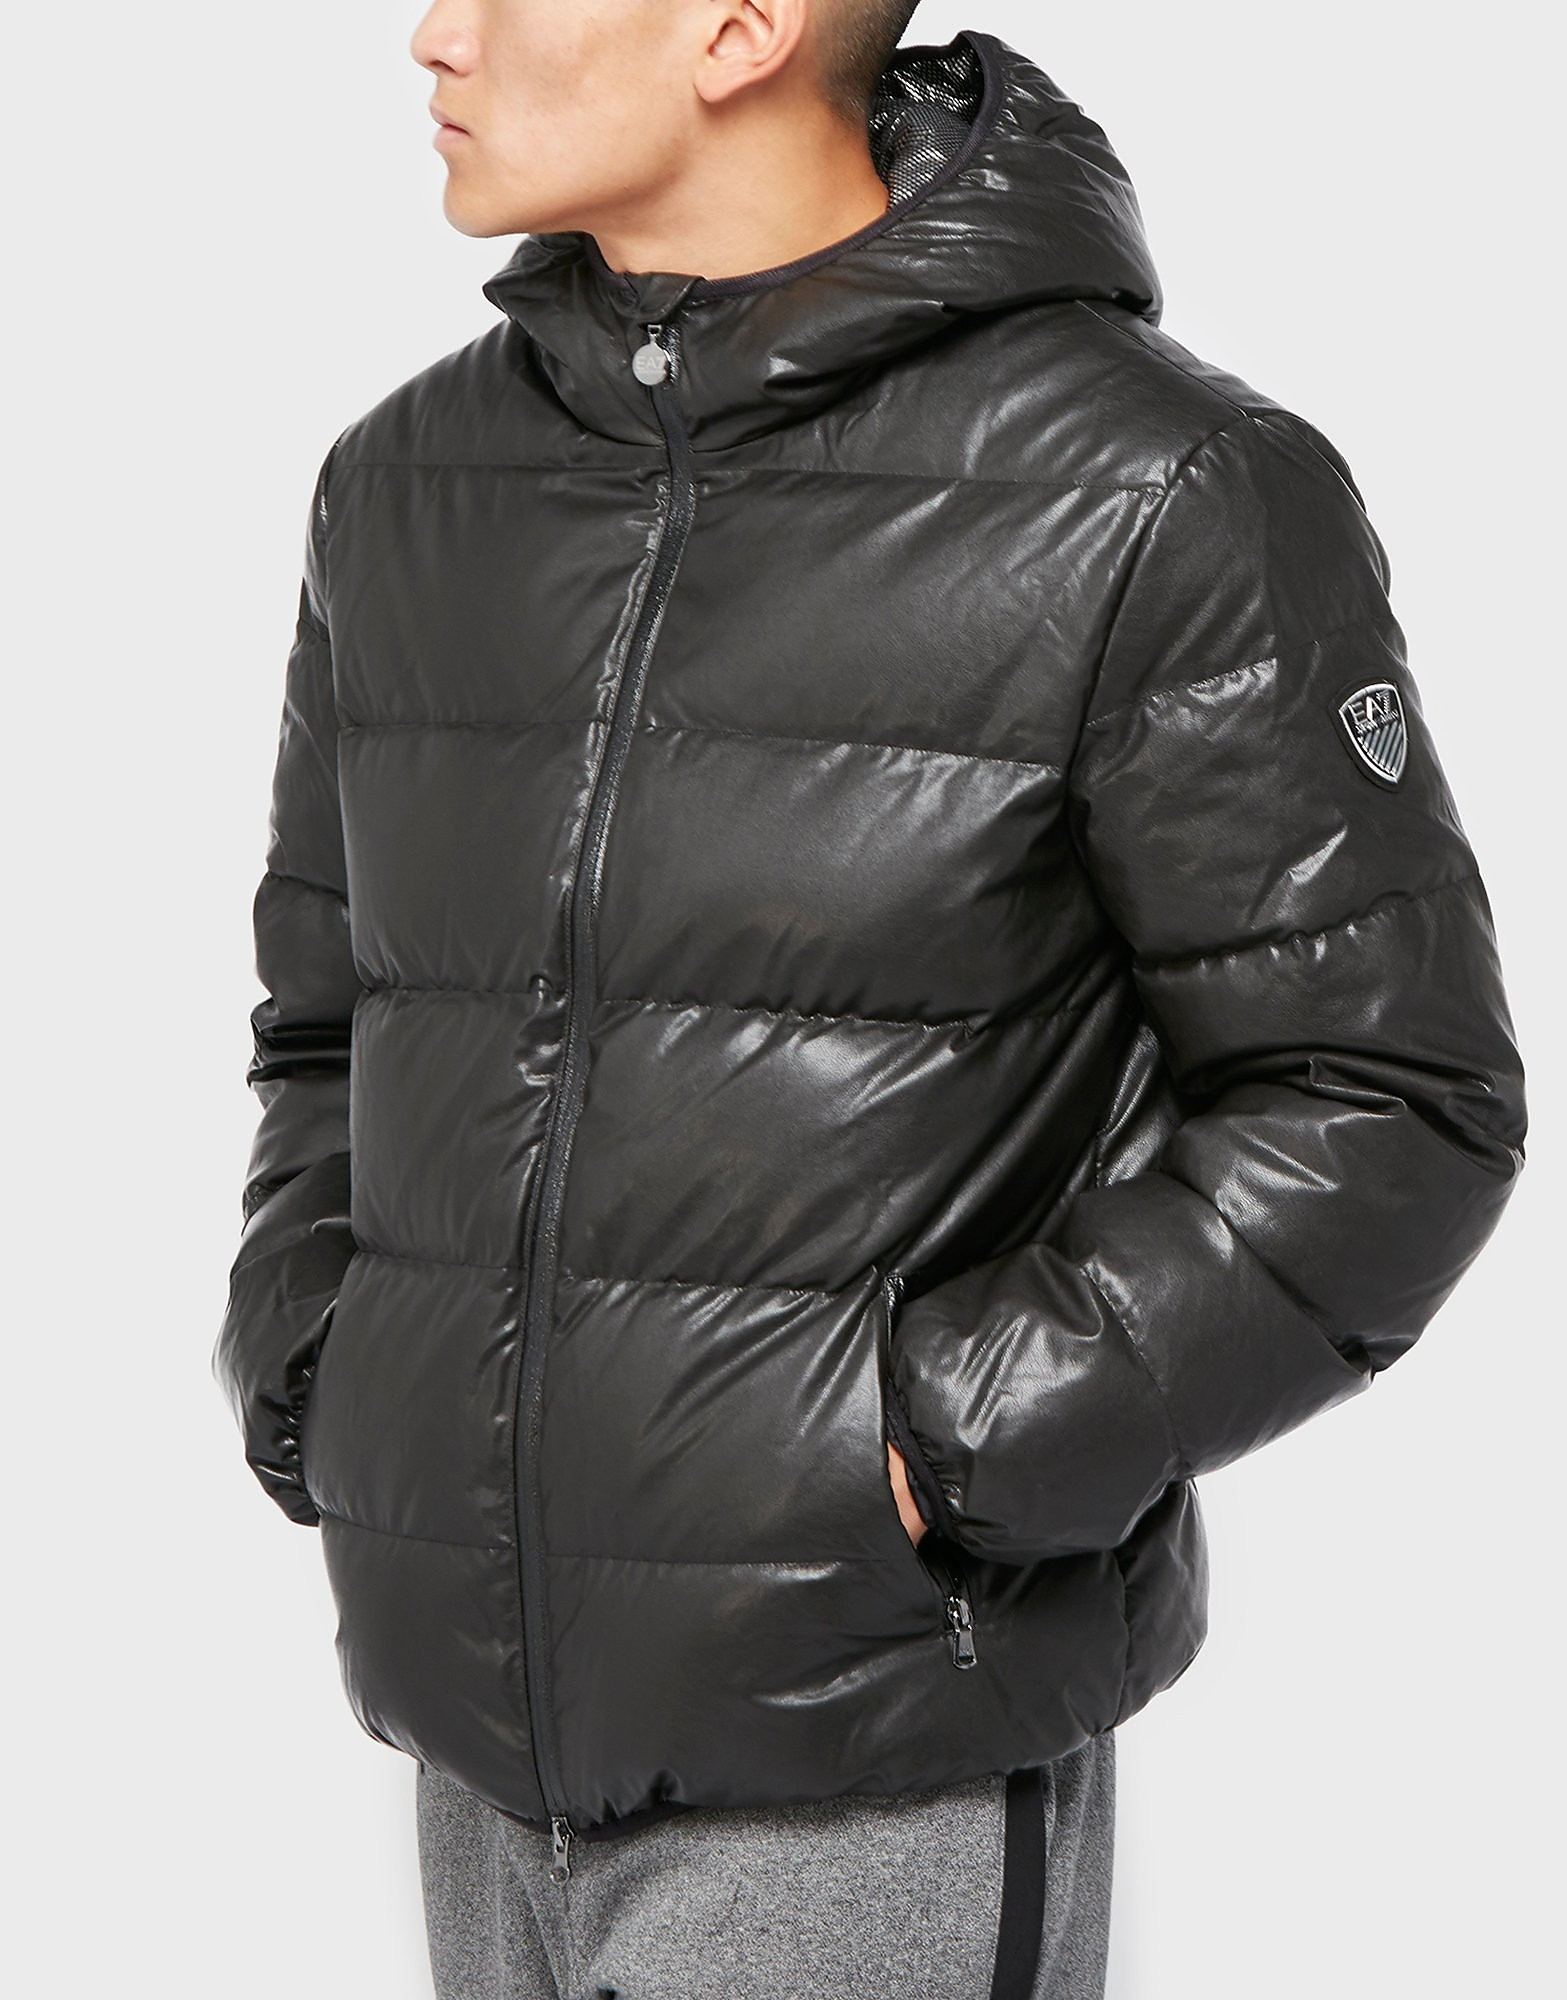 Emporio Armani EA7 Mountain Urban Jacket